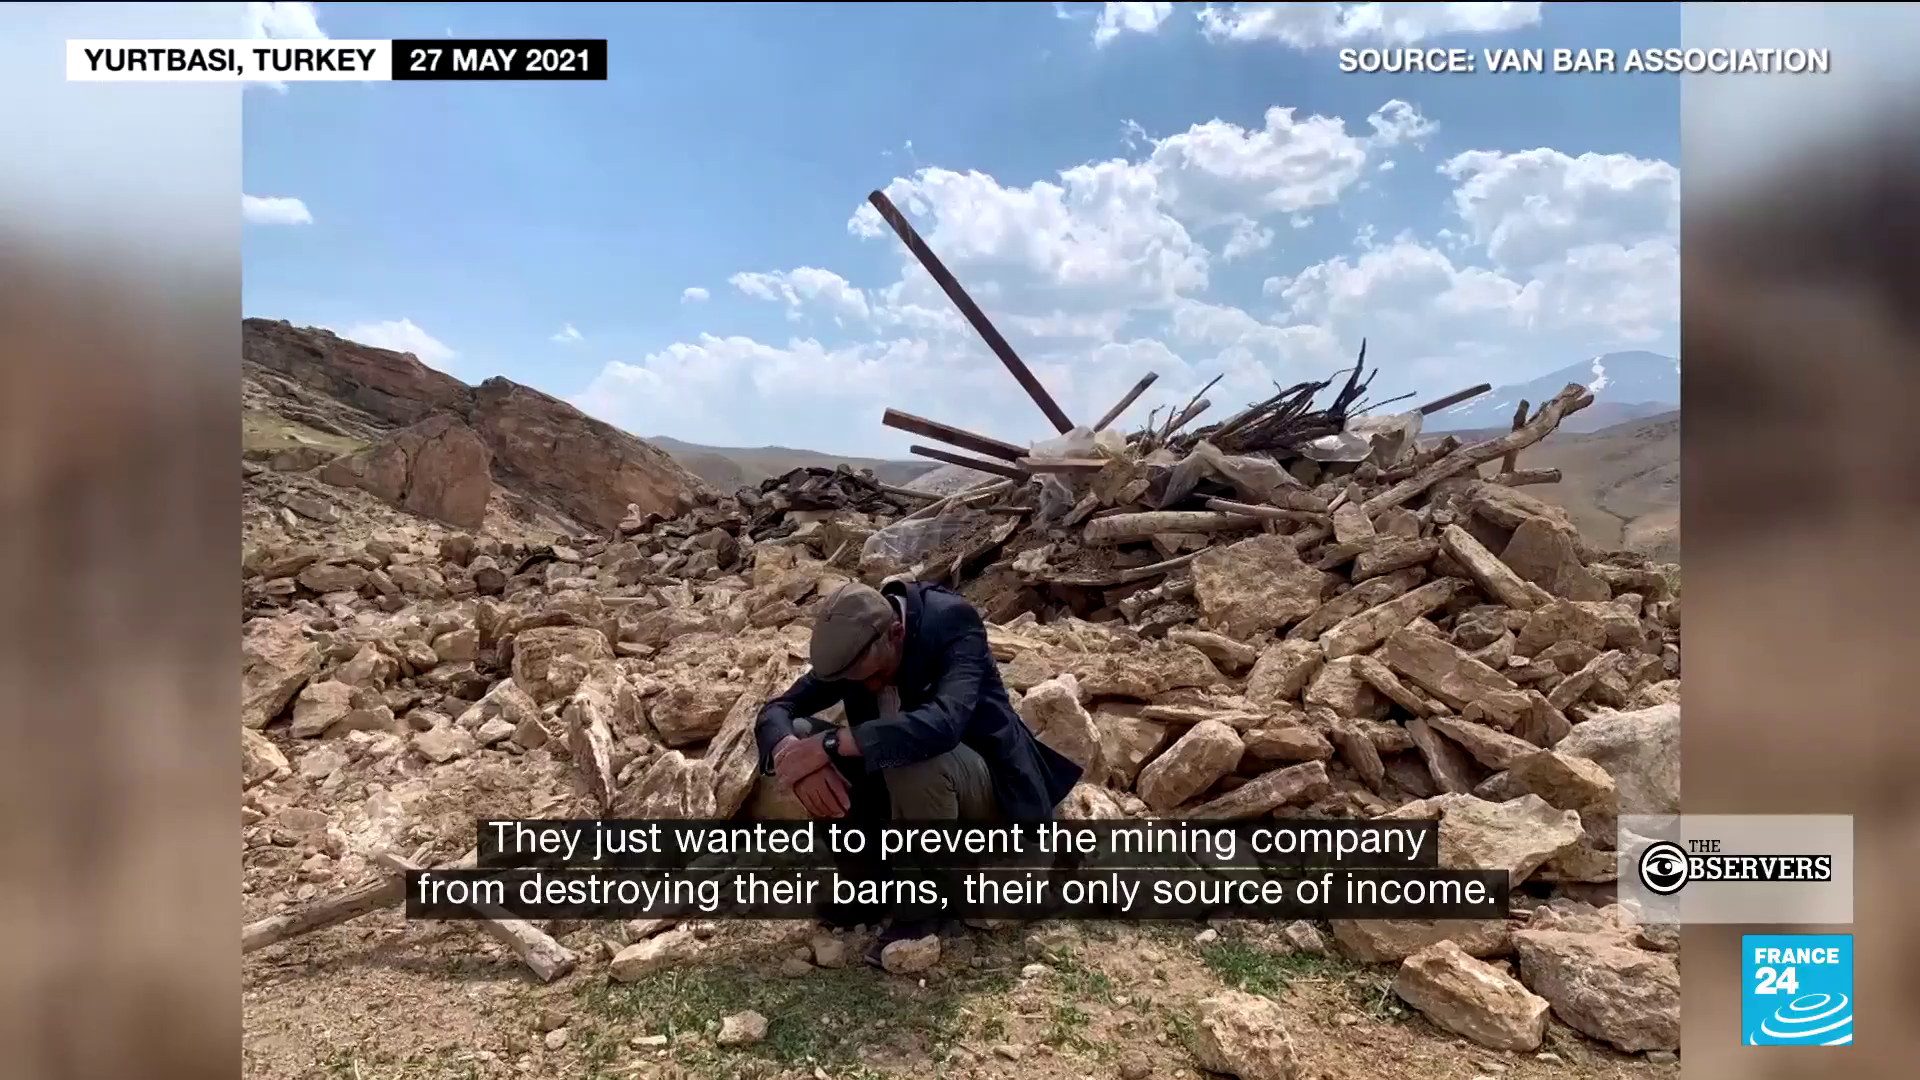 Residents of the village of Yurtbasi, in Eastern Turkey, went out to protest May 26 to try and stop a company that wants to demolish the buildings where they house their animals in order to build a marble quarry.